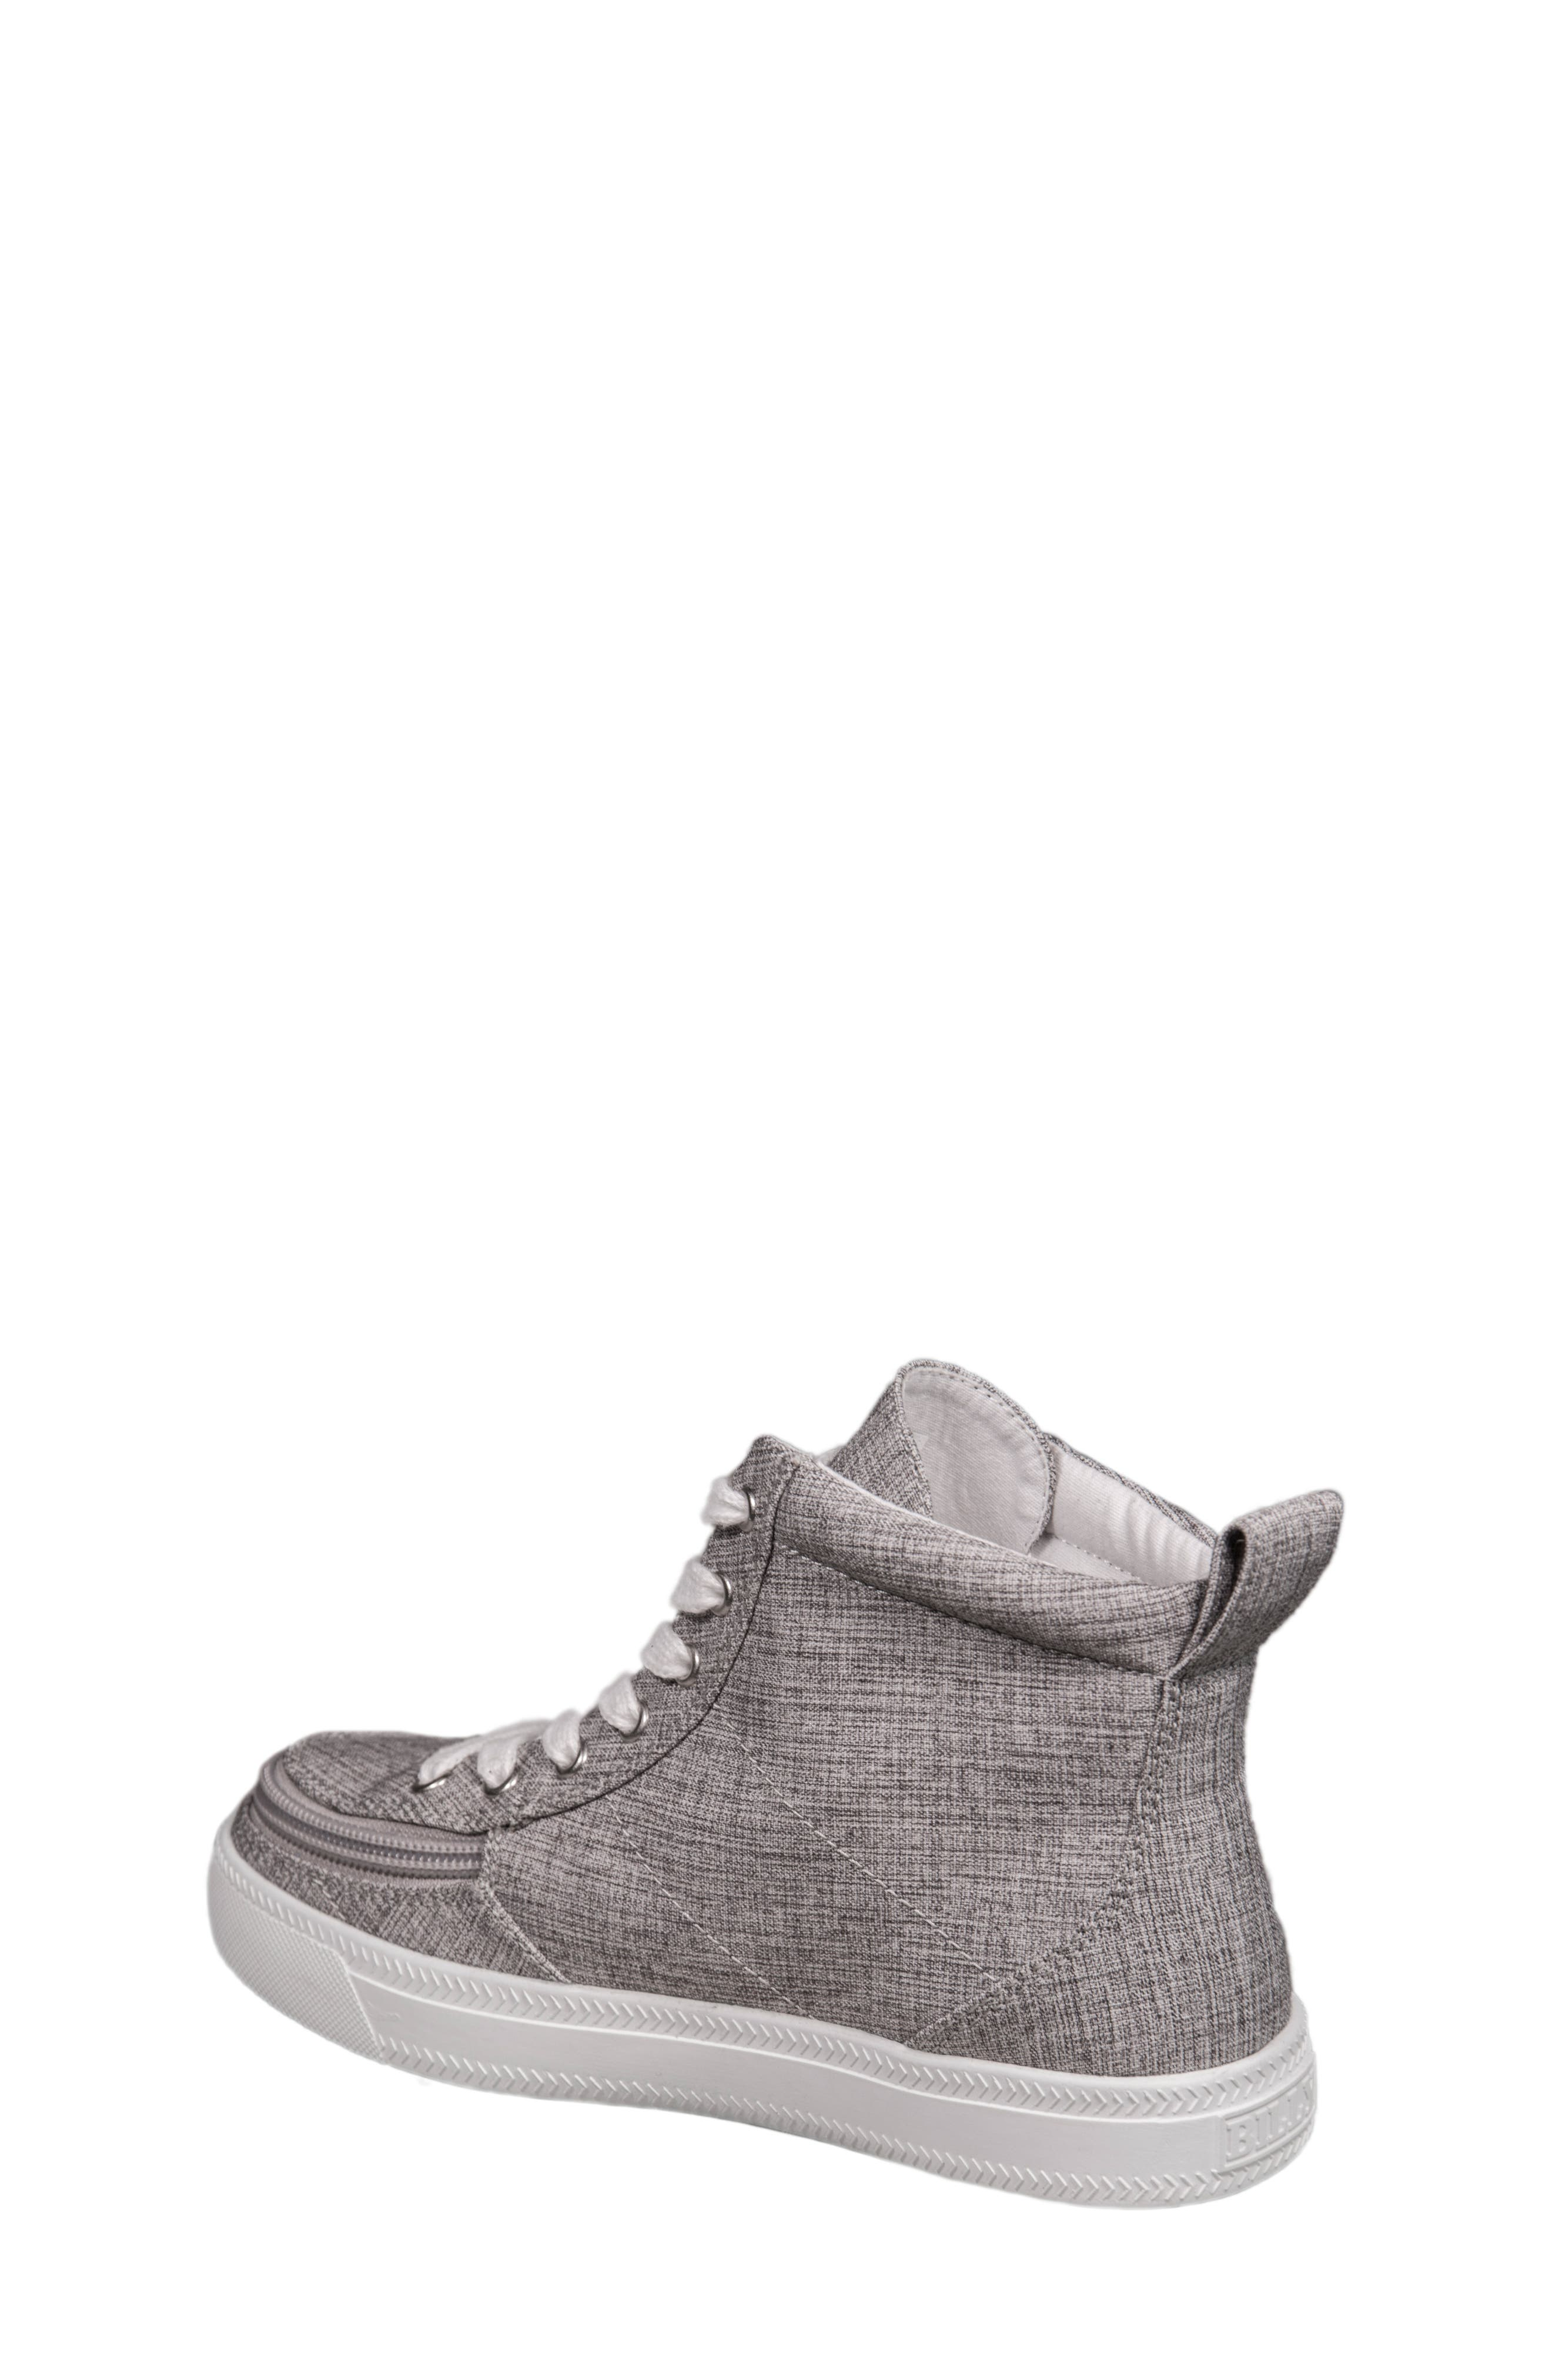 BILLY FOOTWEAR, Zip Around High Top Sneaker, Alternate thumbnail 2, color, GREY JERSEY